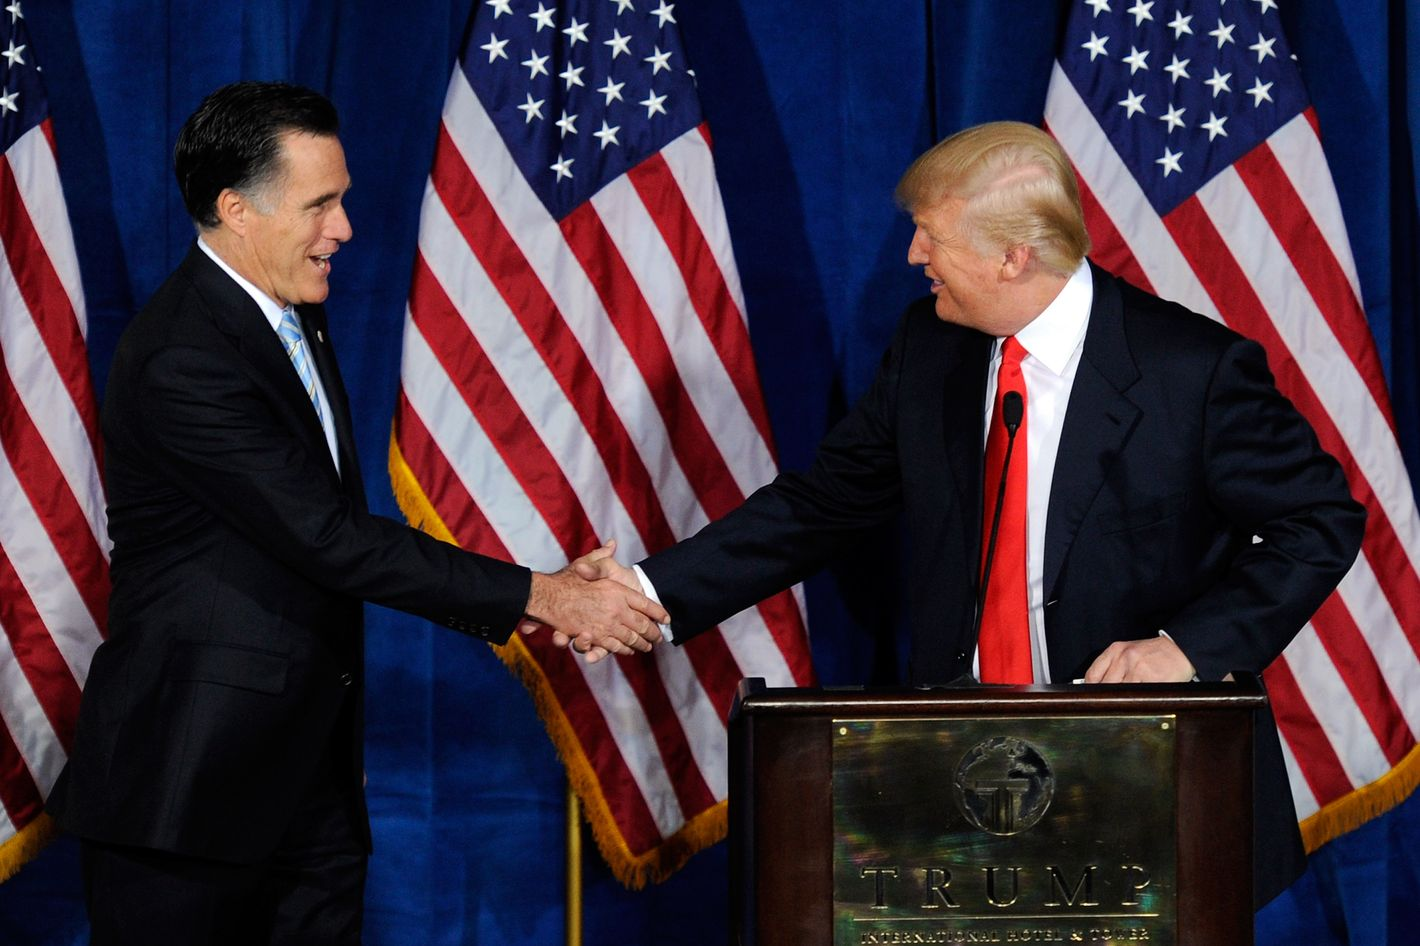 Republican presidential candidate, former Massachusetts Gov. Mitt Romney (L) and Donald Trump shake hands during a news conference held by Trump to endorse Romney for president at the Trump International Hotel & Tower Las Vegas February 2, 2012 in Las Vegas, Nevada. Romney came in first in the Florida primary on January 31 and is looking ahead to Nevada's caucus on February 4.